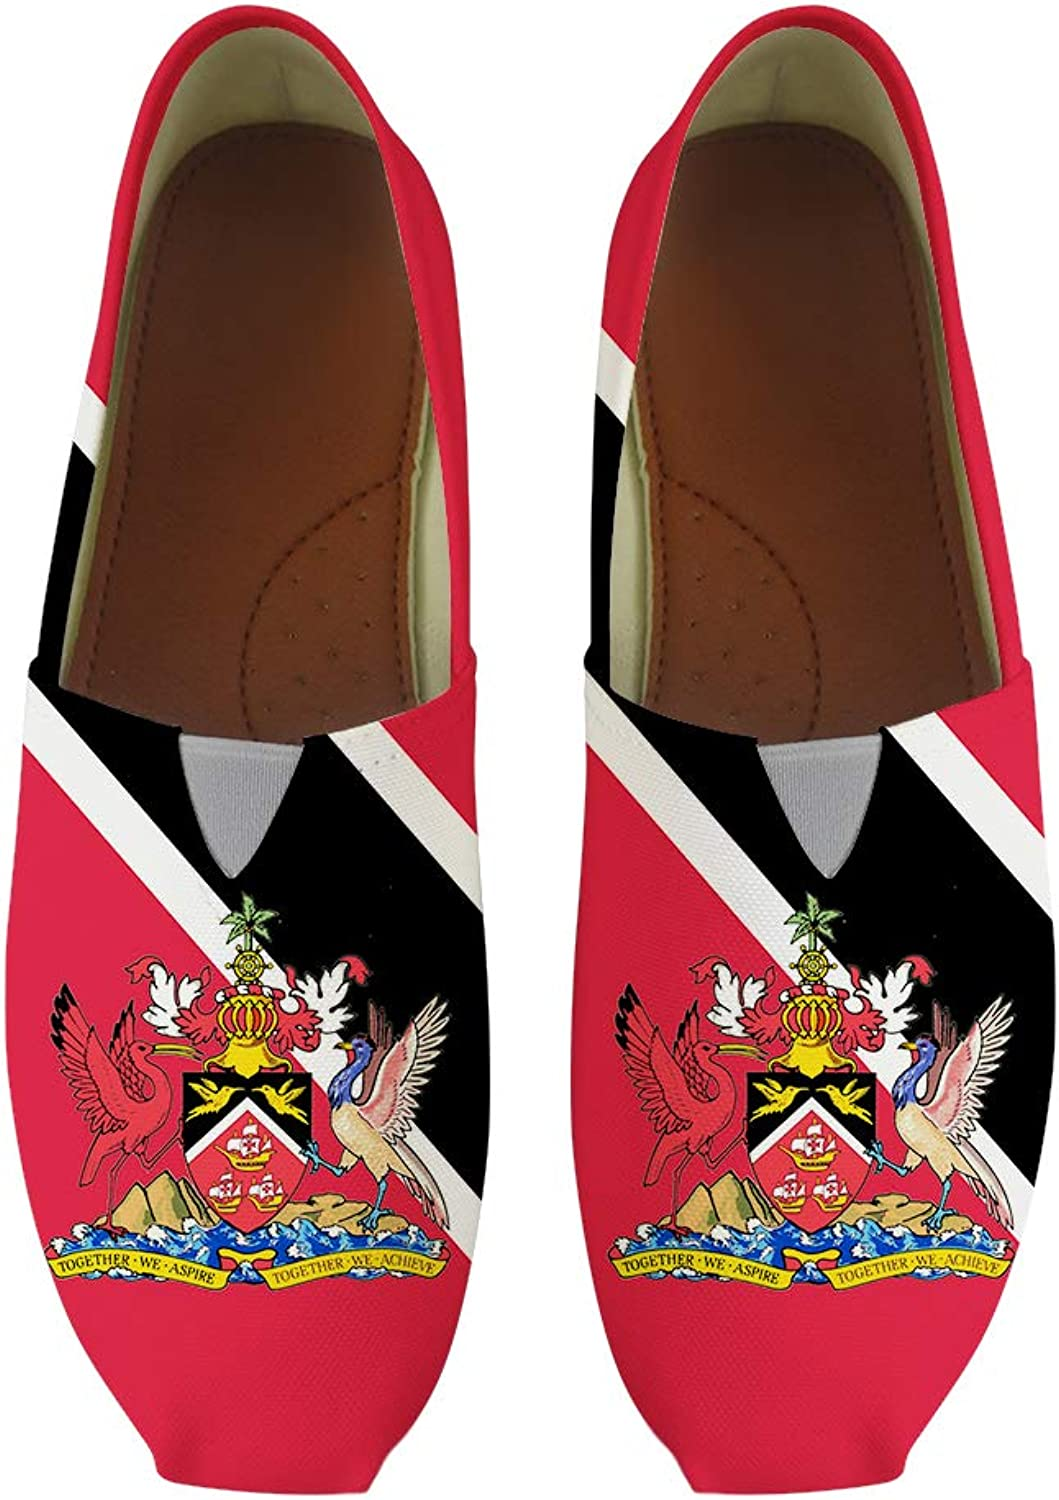 Owaheson Classic Canvas Slip-On Lightweight Driving shoes Soft Penny Loafers Men Women Trinidad and Tobago Flag National Emblem